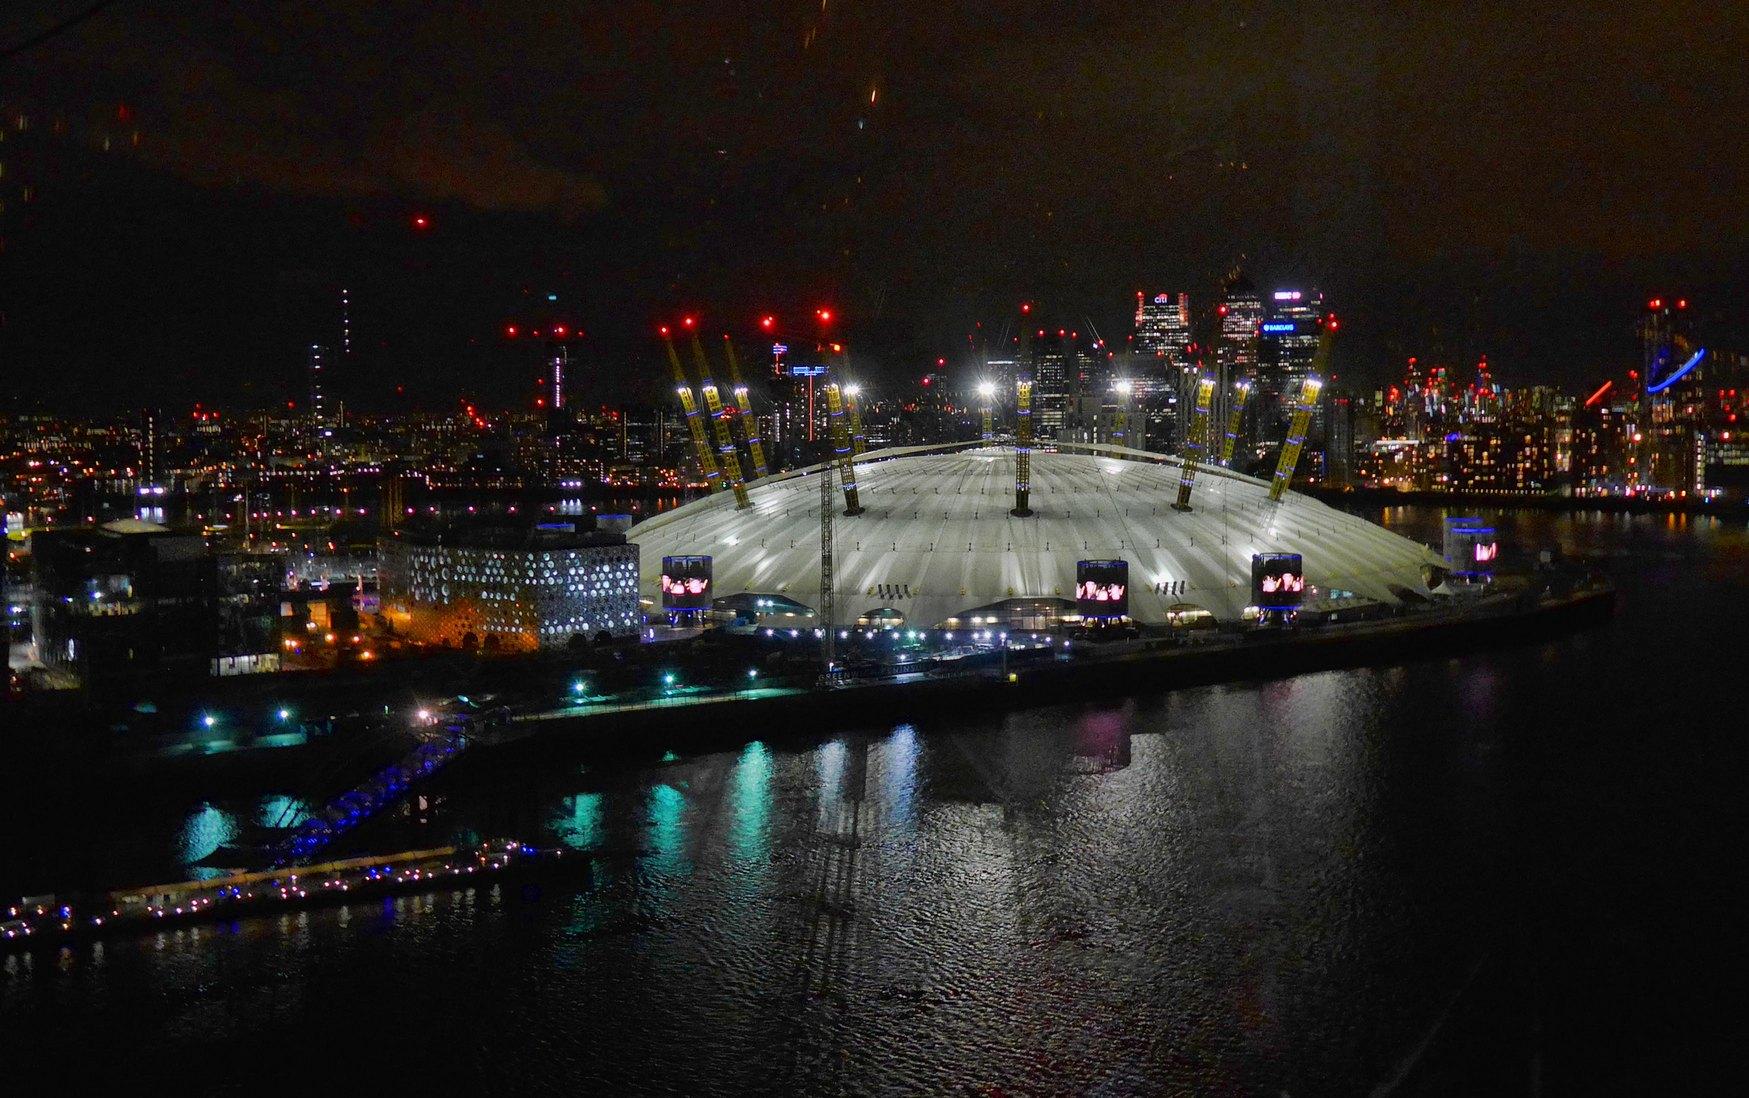 Millennium Dome, London, at night